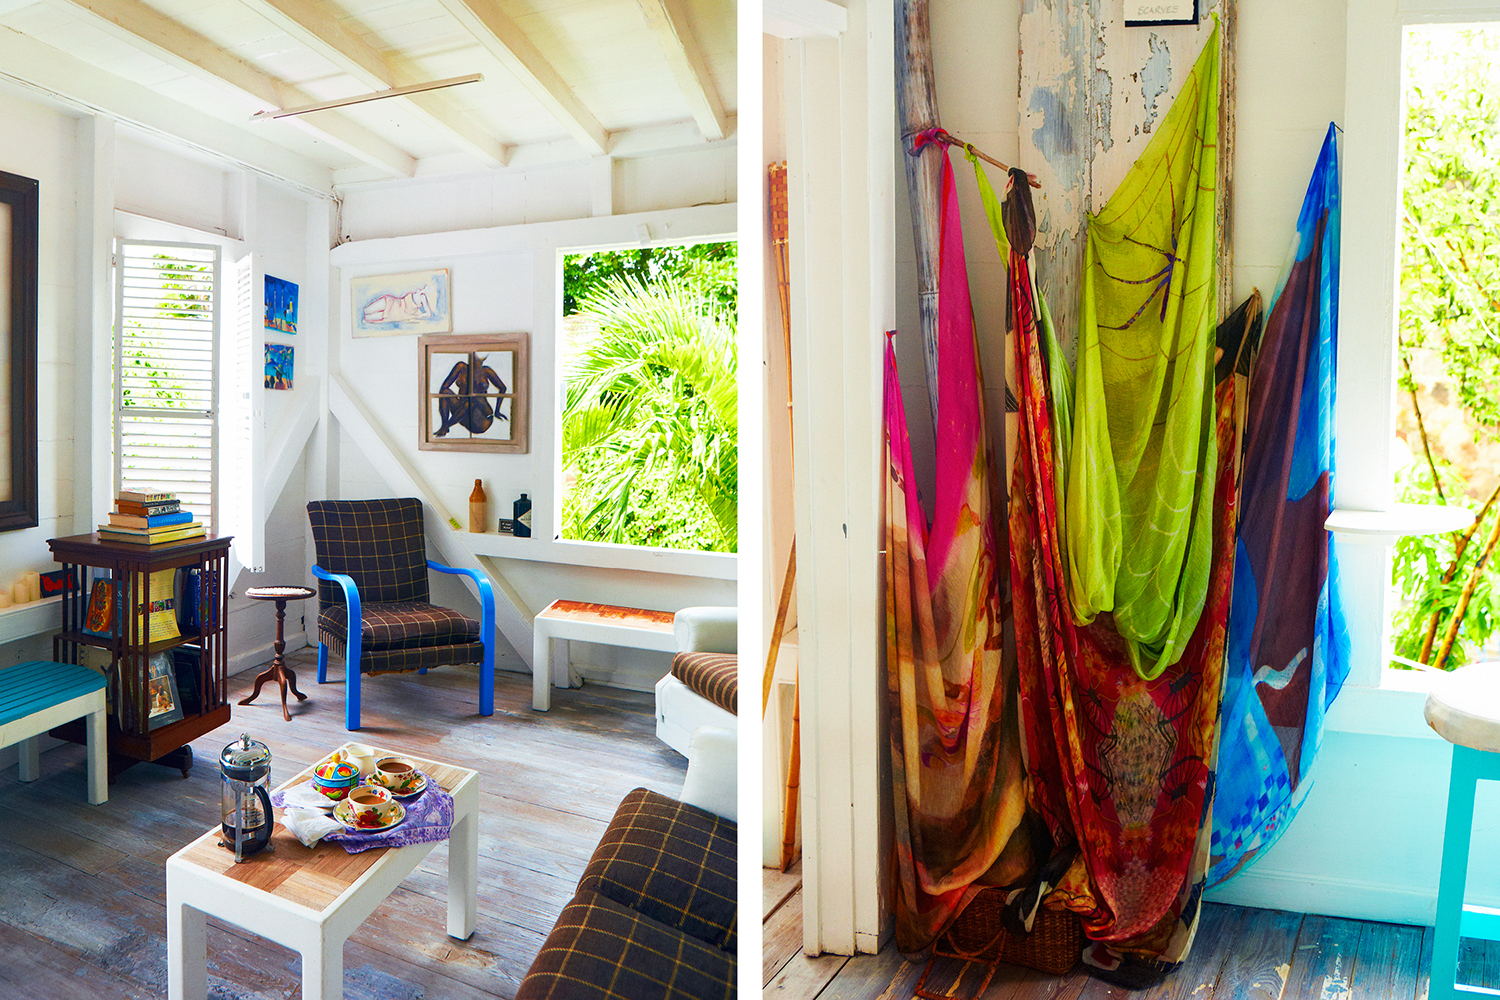 THE GALLERY CAFE AT ROSY CAMERON STUDIO, BASSETERRE